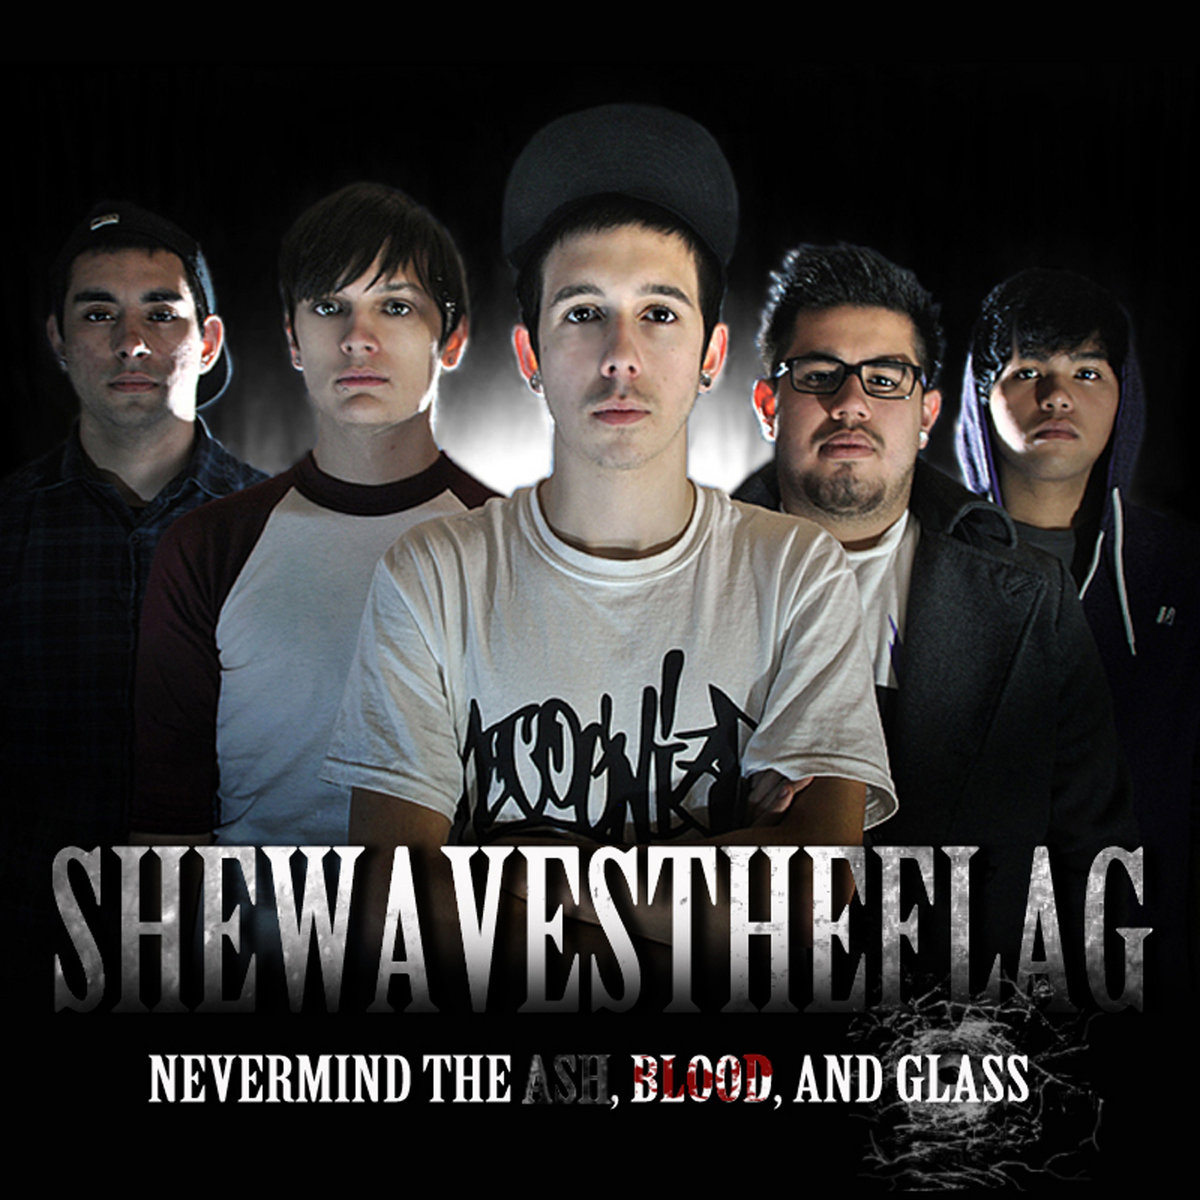 She Waves The Flag -  Nevermind the Ash, Blood, and Glass [EP] (2011)